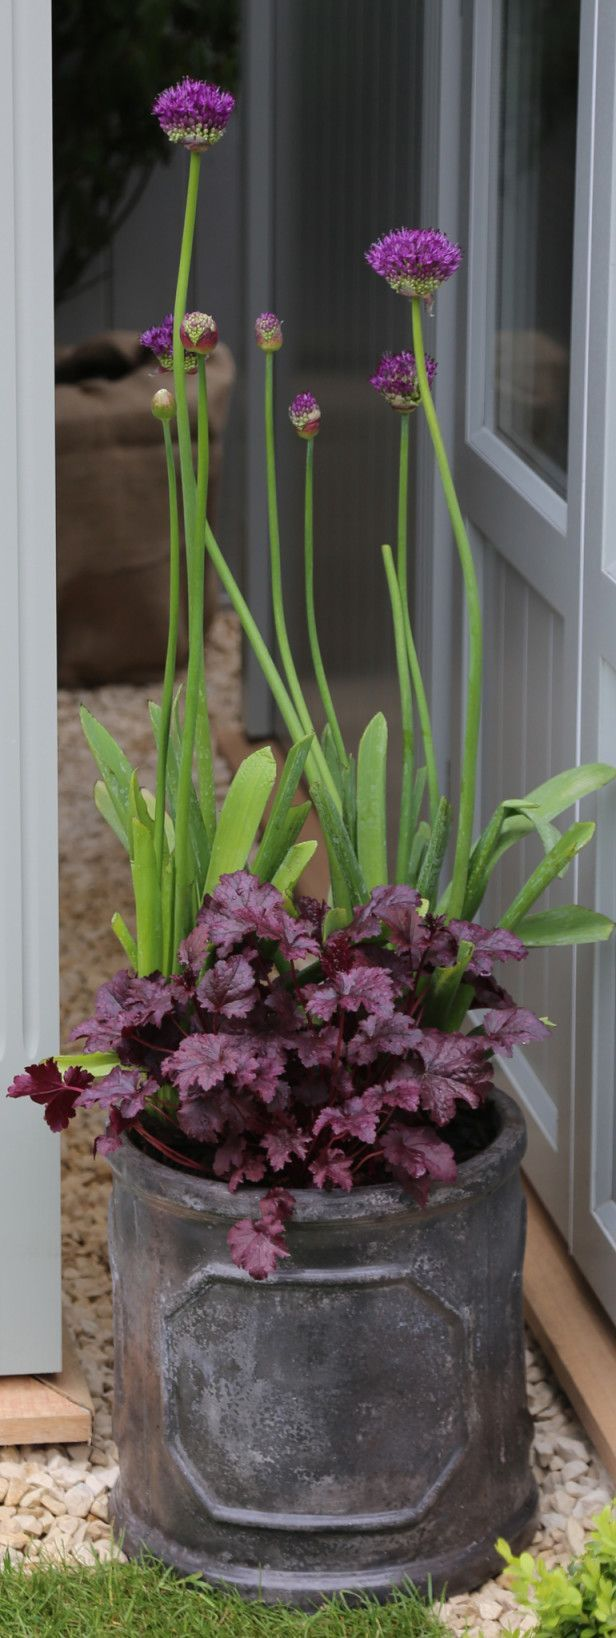 Plant spring bulbs with heuchera at the base